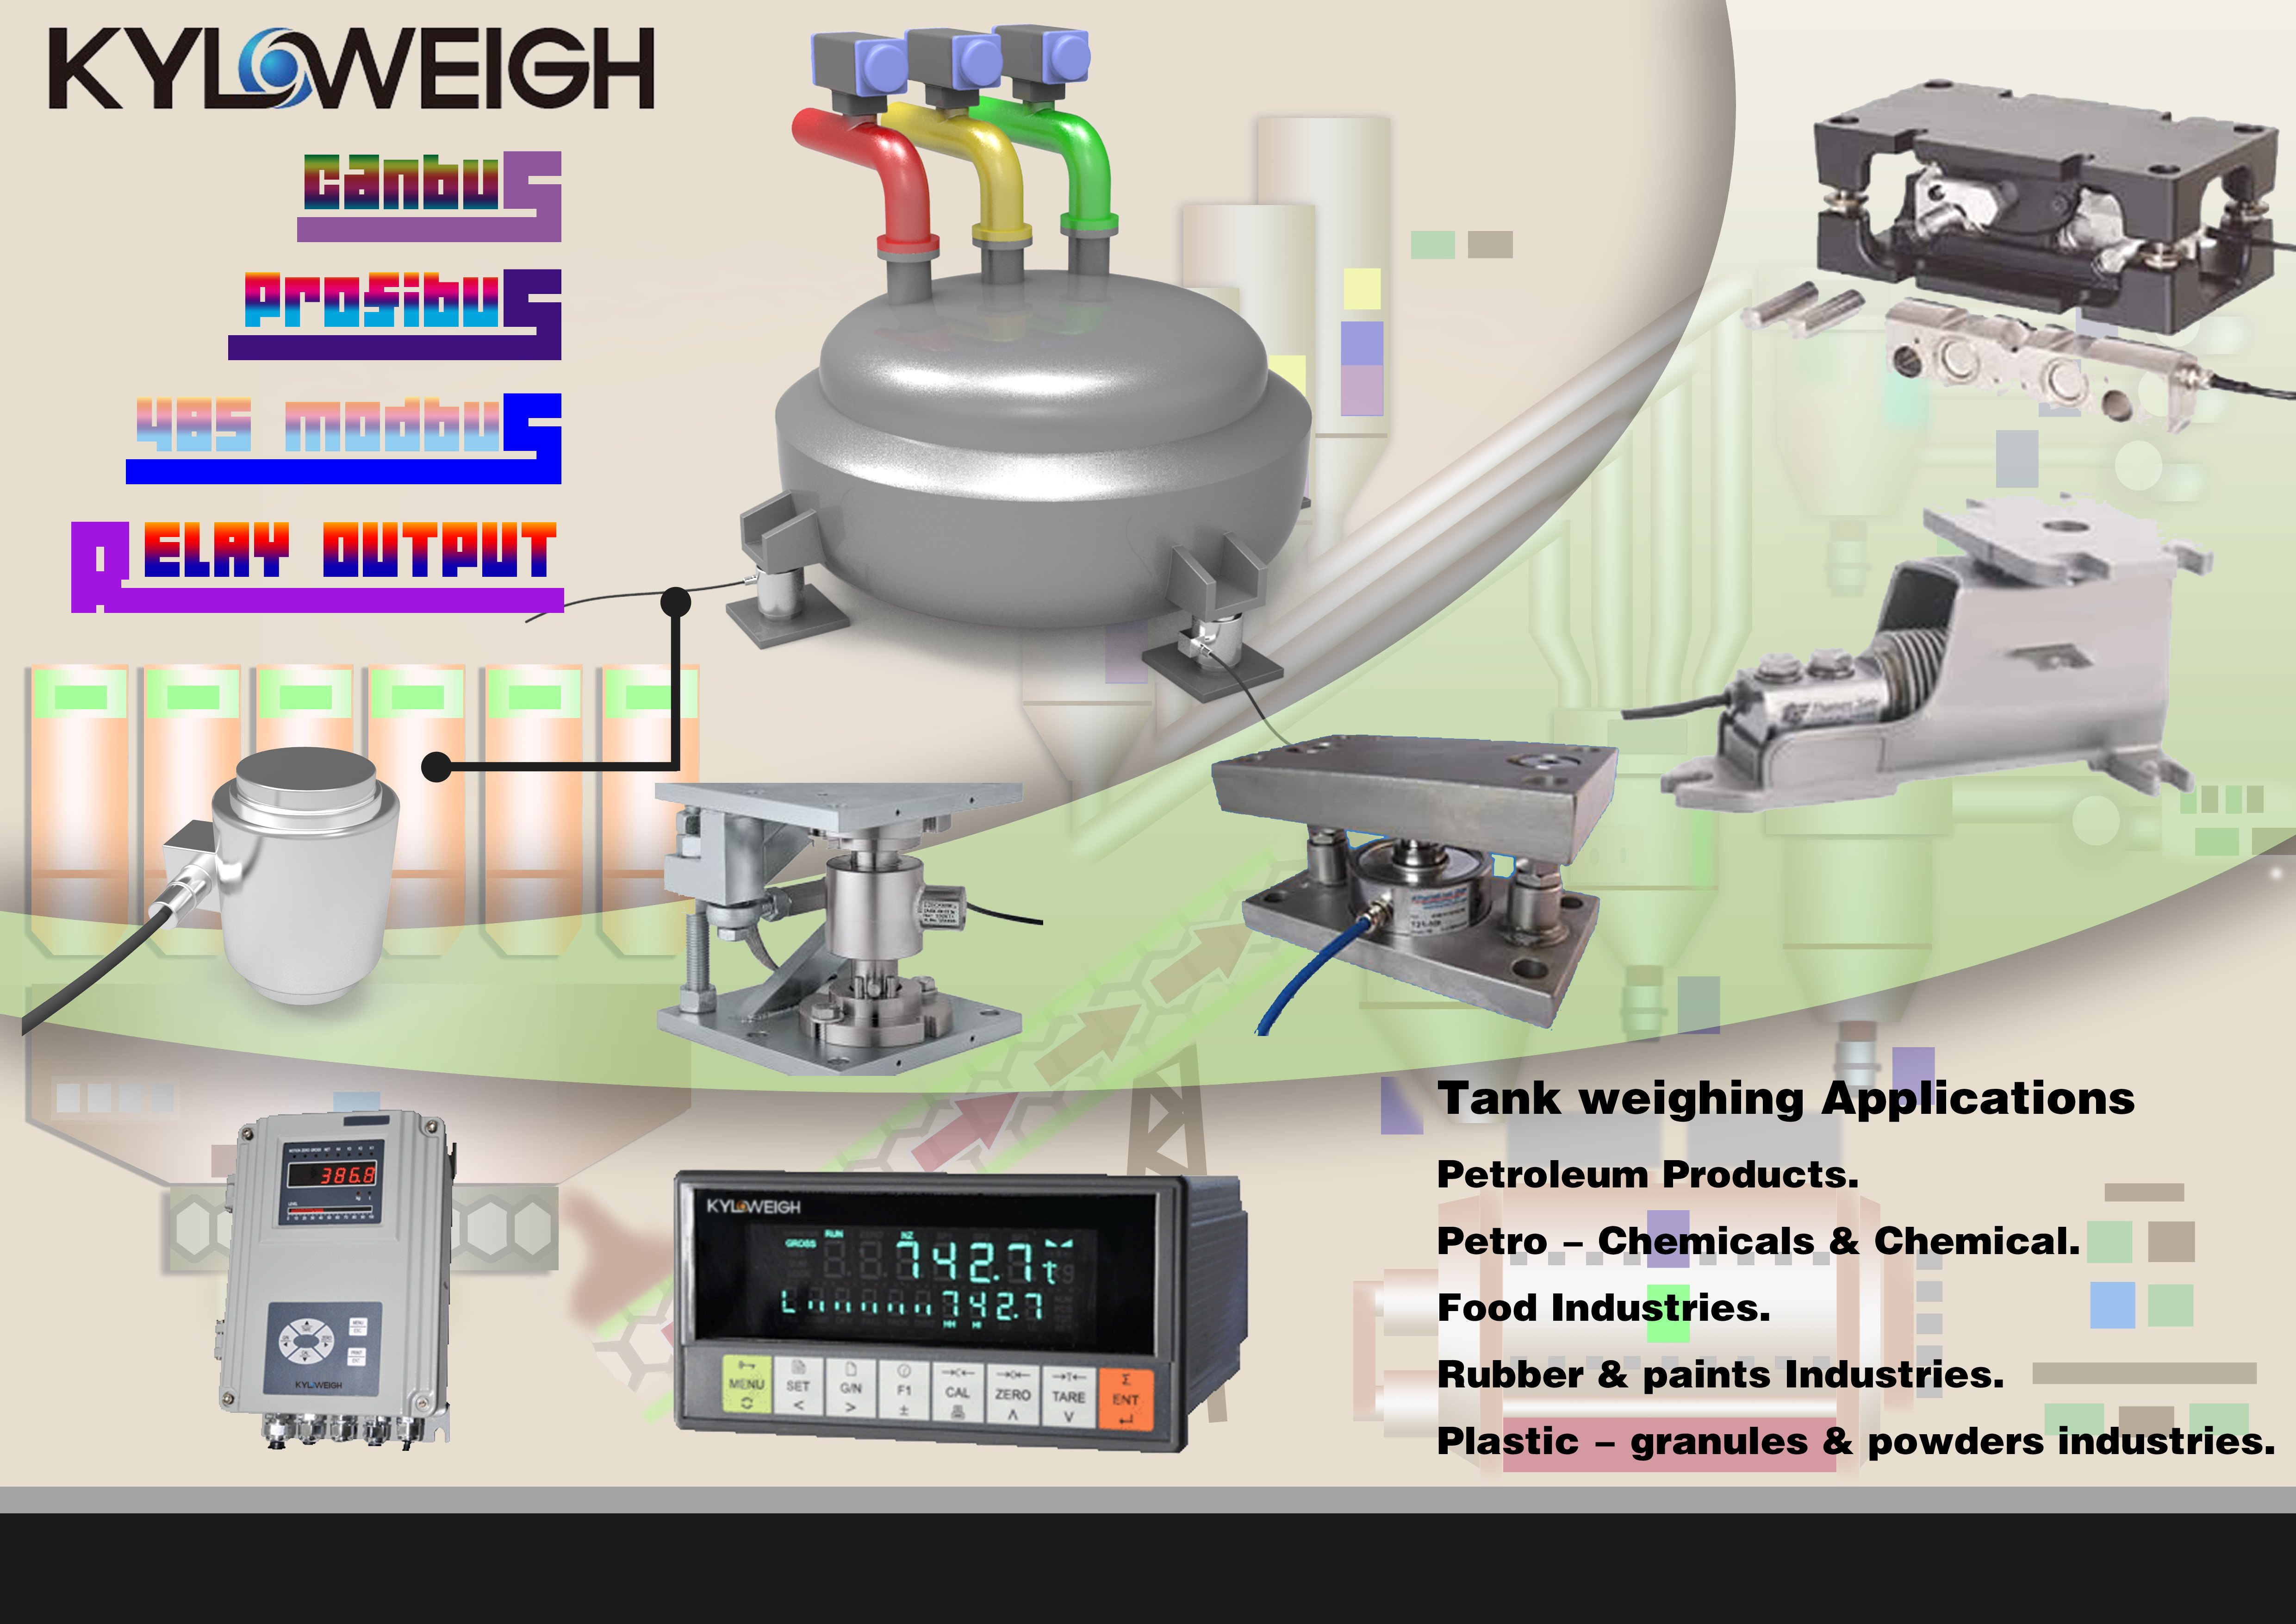 KYLOWEIGH TANK WEIGHING SYSTEM